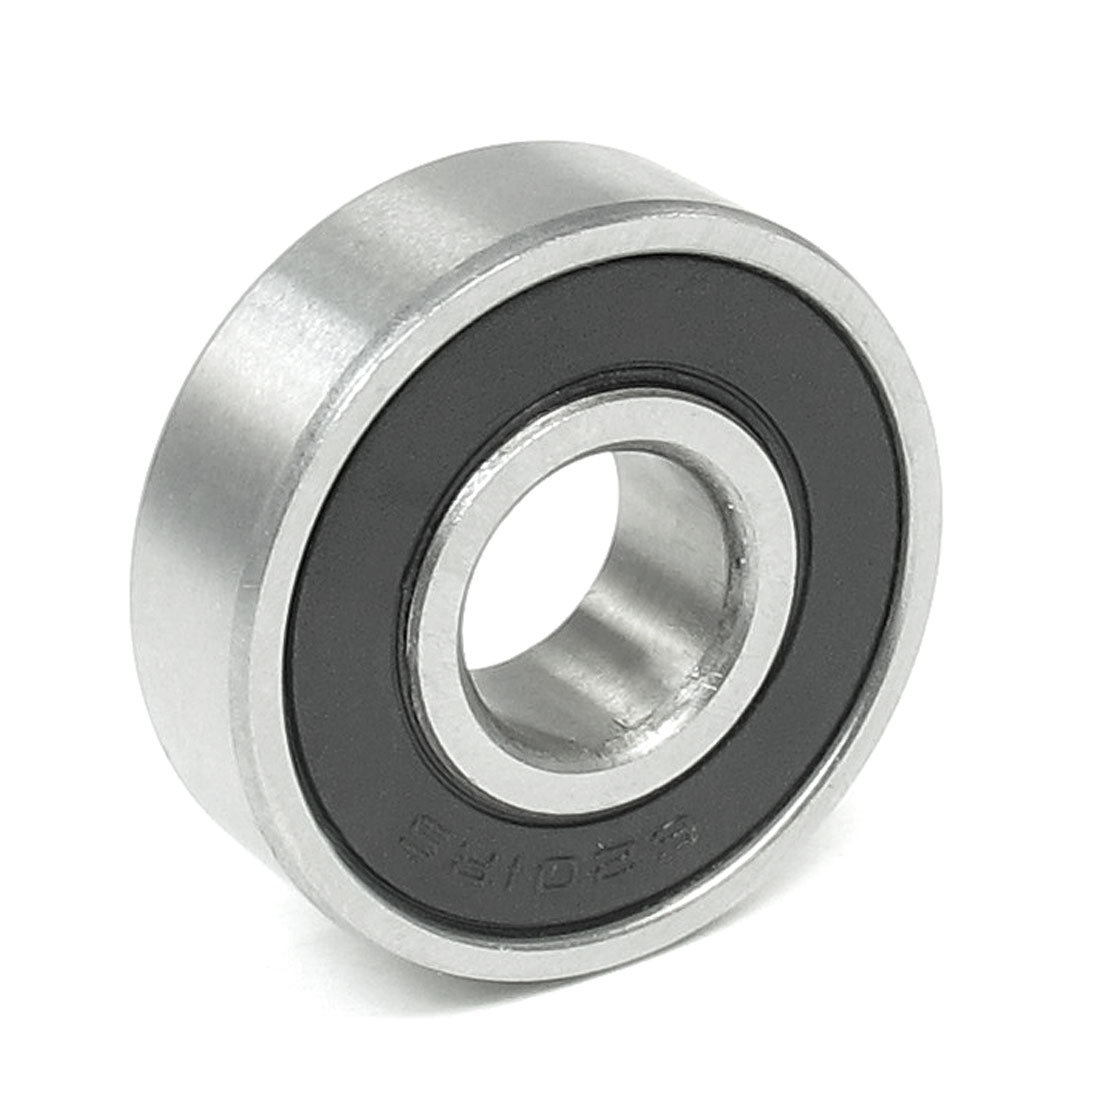 6201RS 12mm x 32mm x 10mm Shielded Miniature Deep Groove Ball Bearings